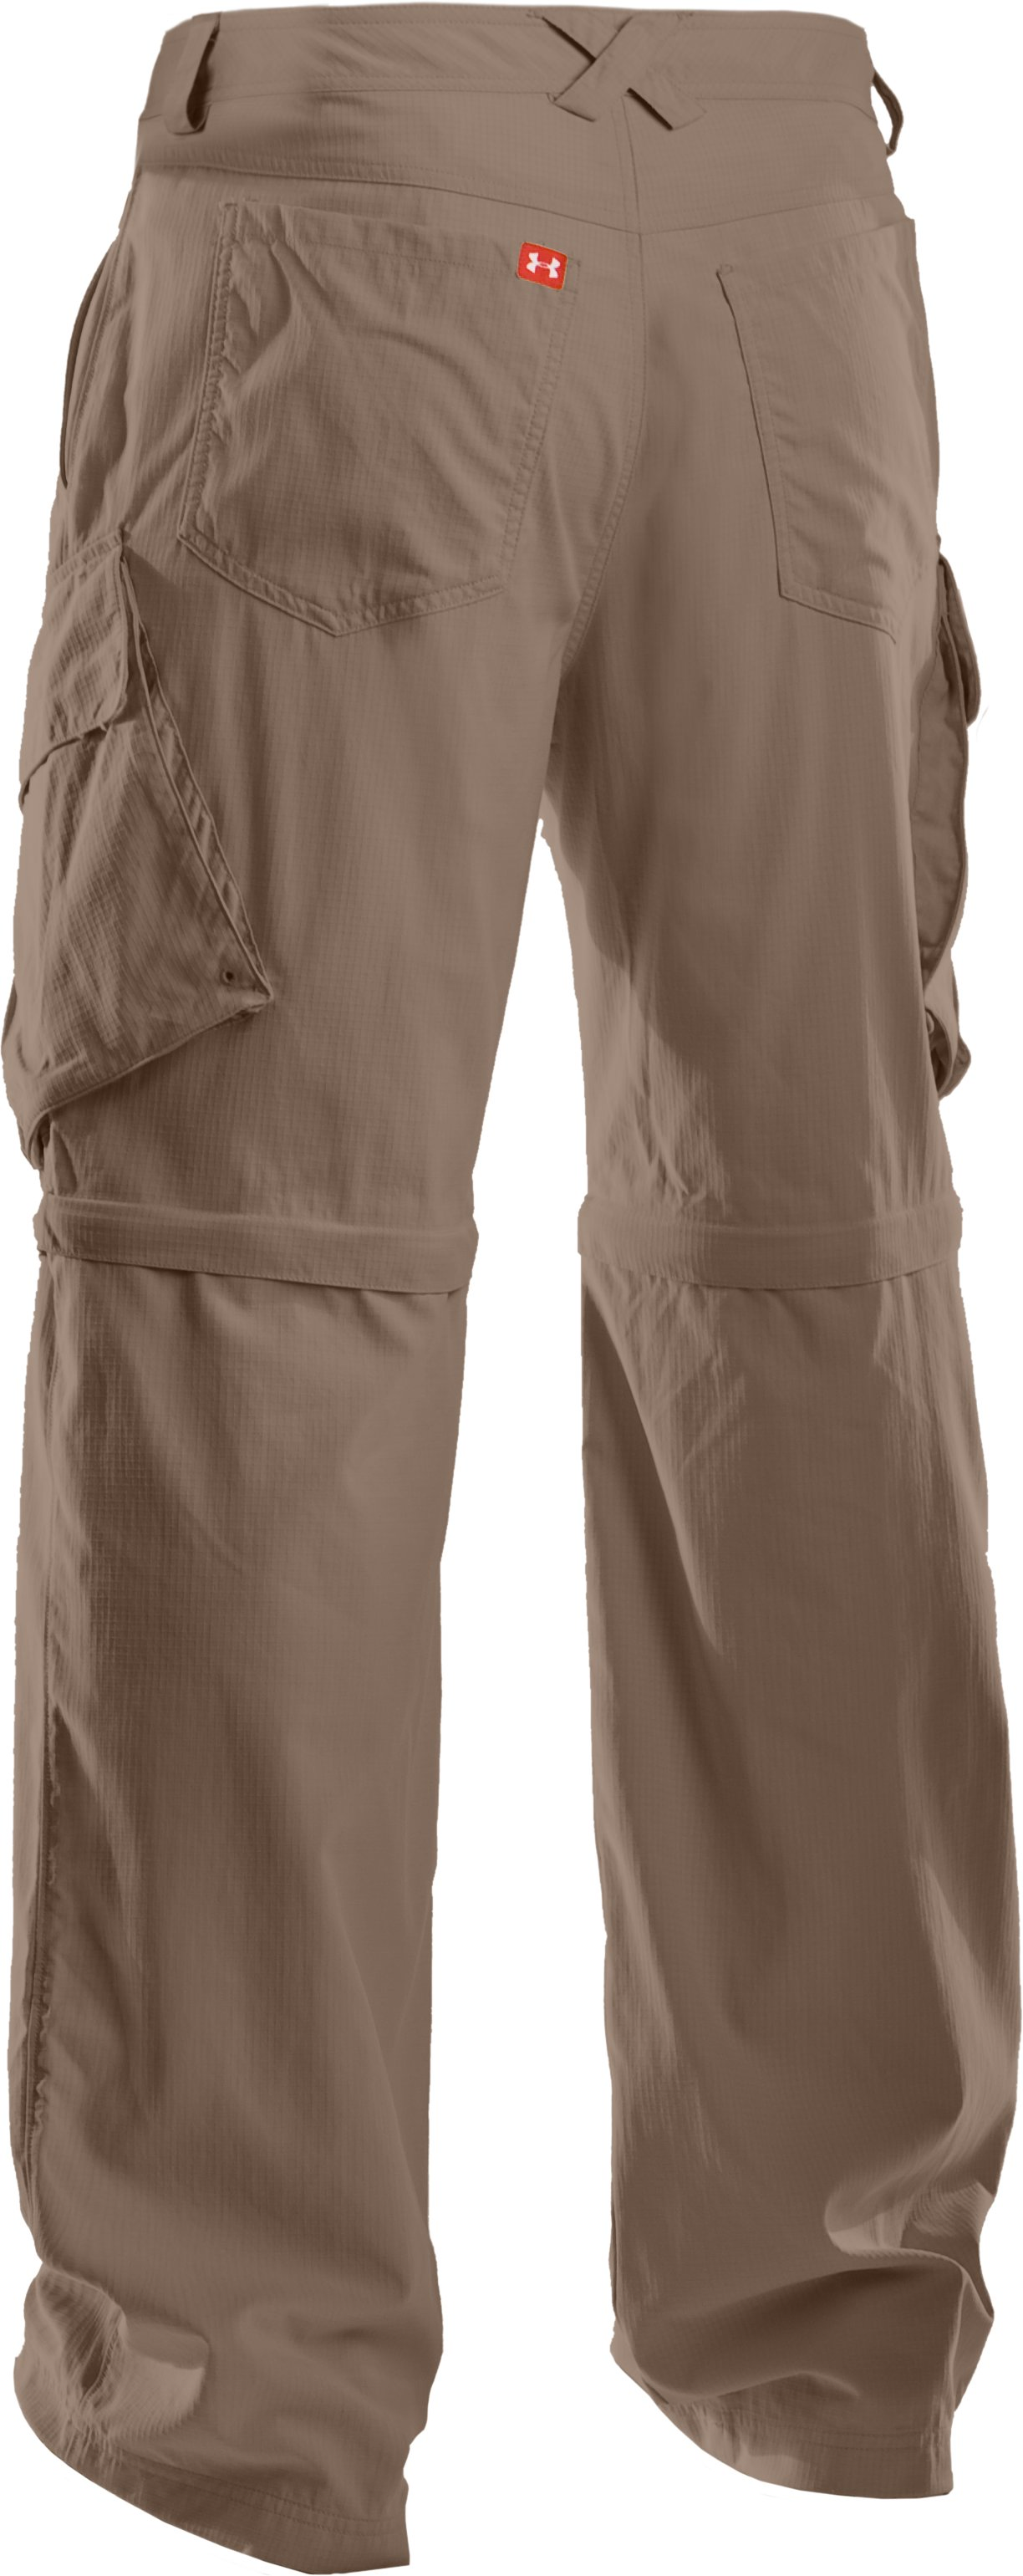 Men's UA Guide Zip-Off Trail Pants III, Uniform